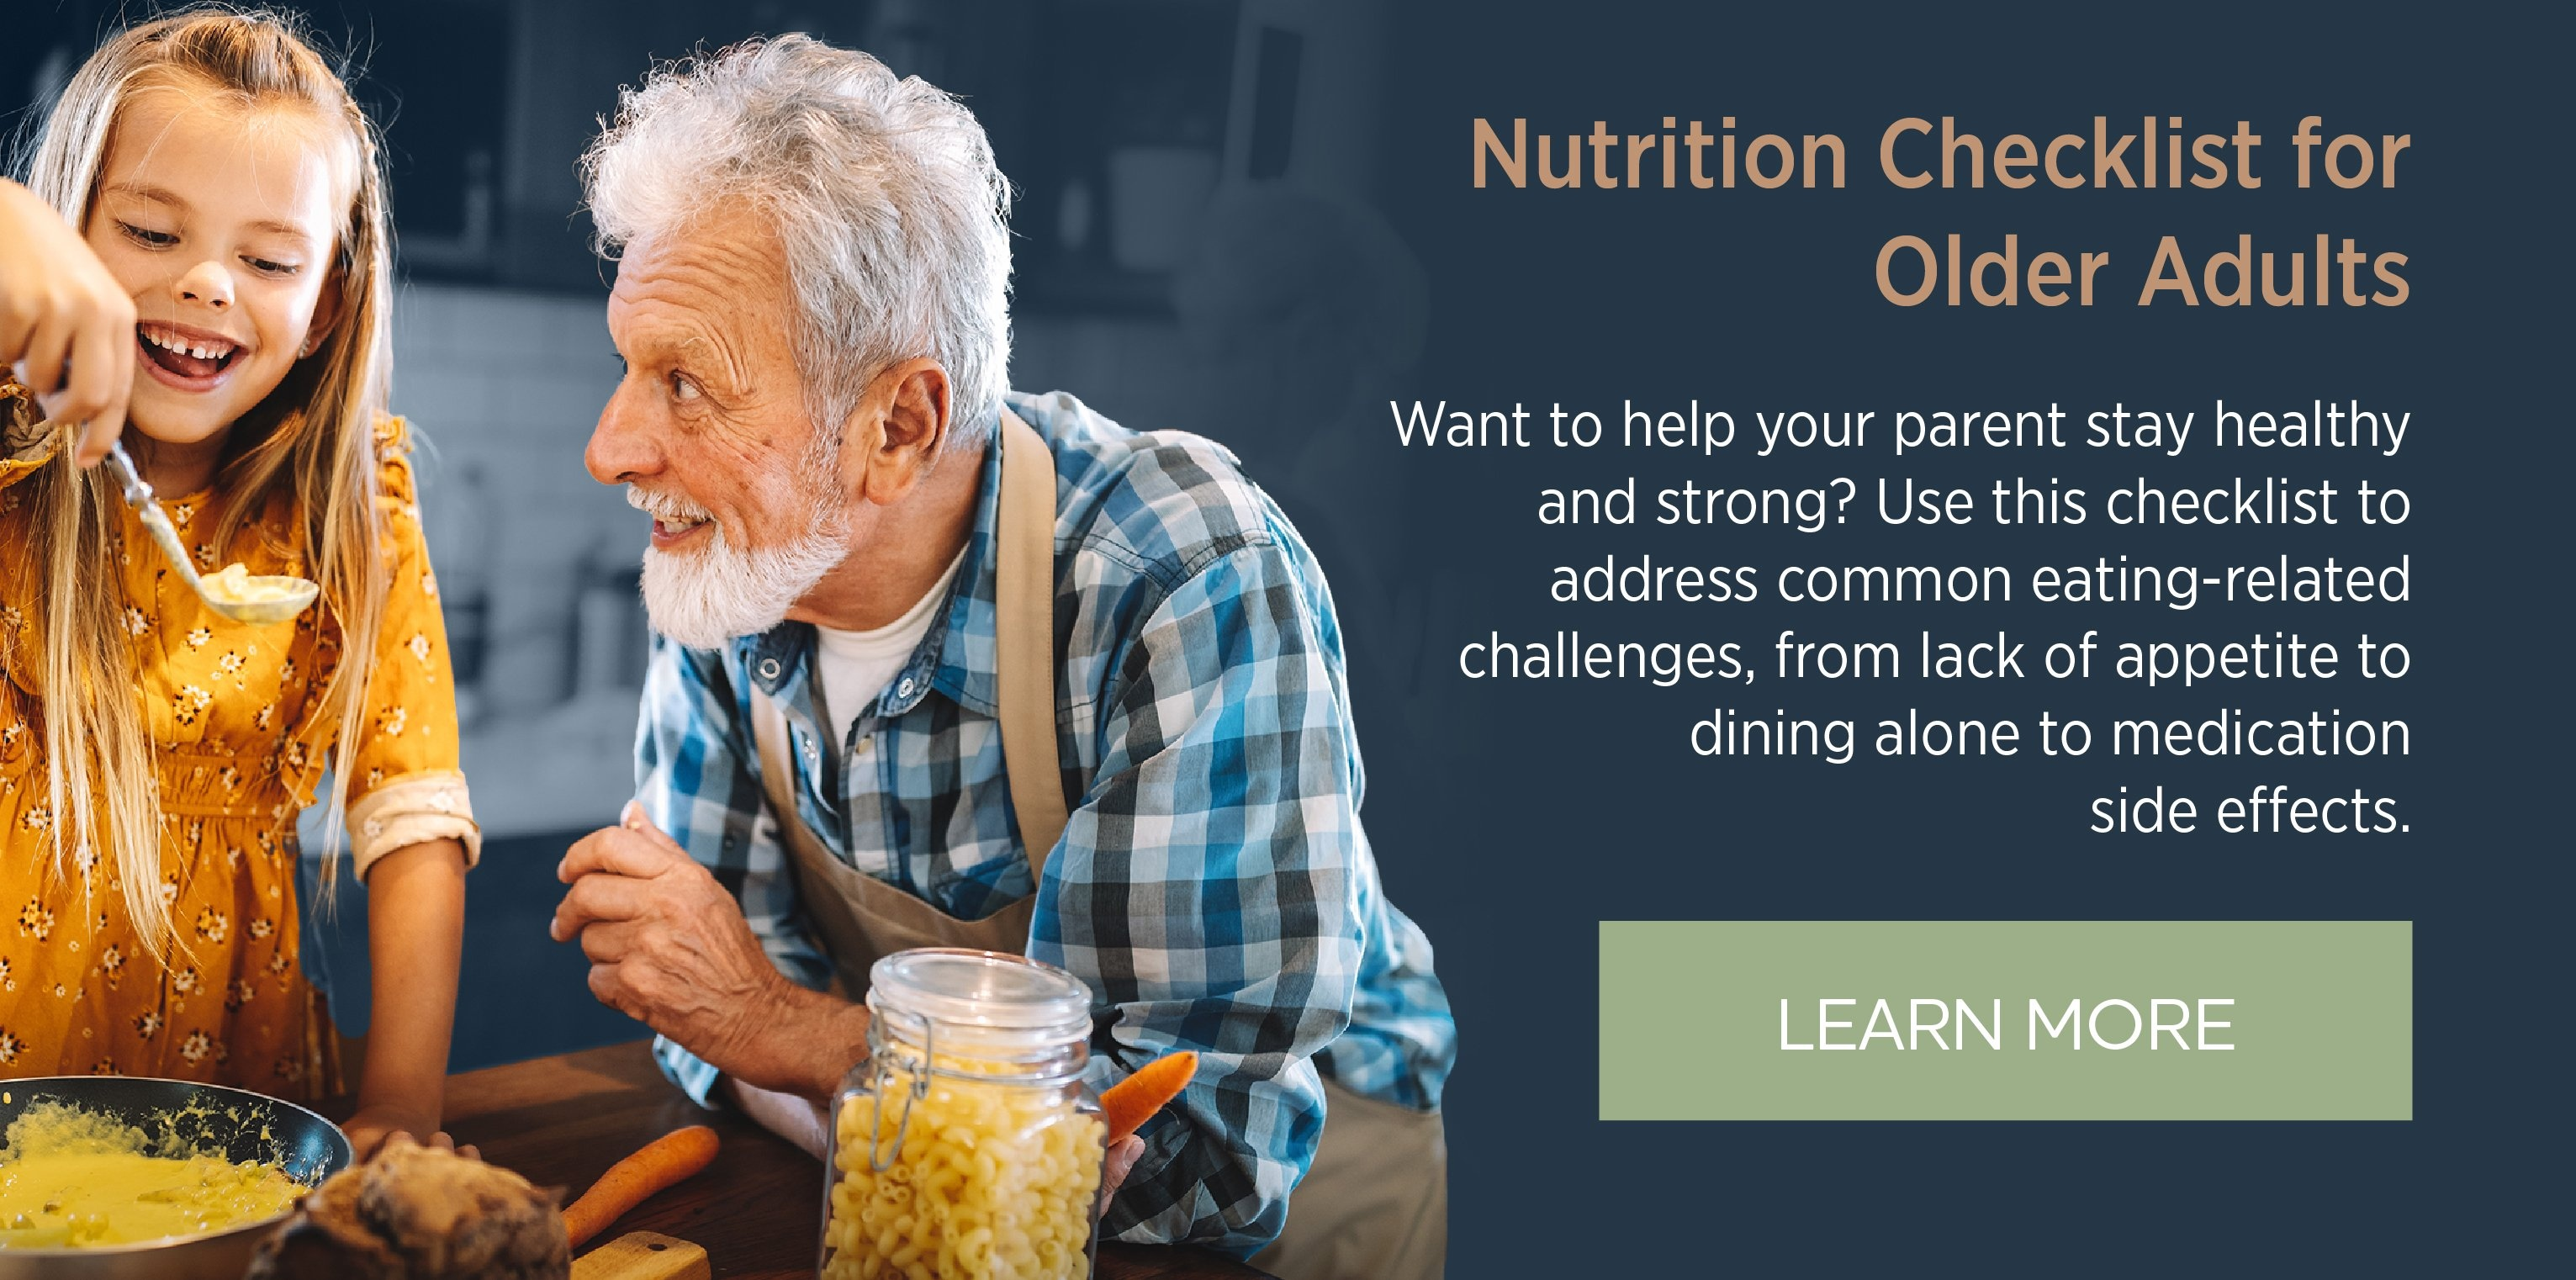 Nutrition Checklist for Older Adults